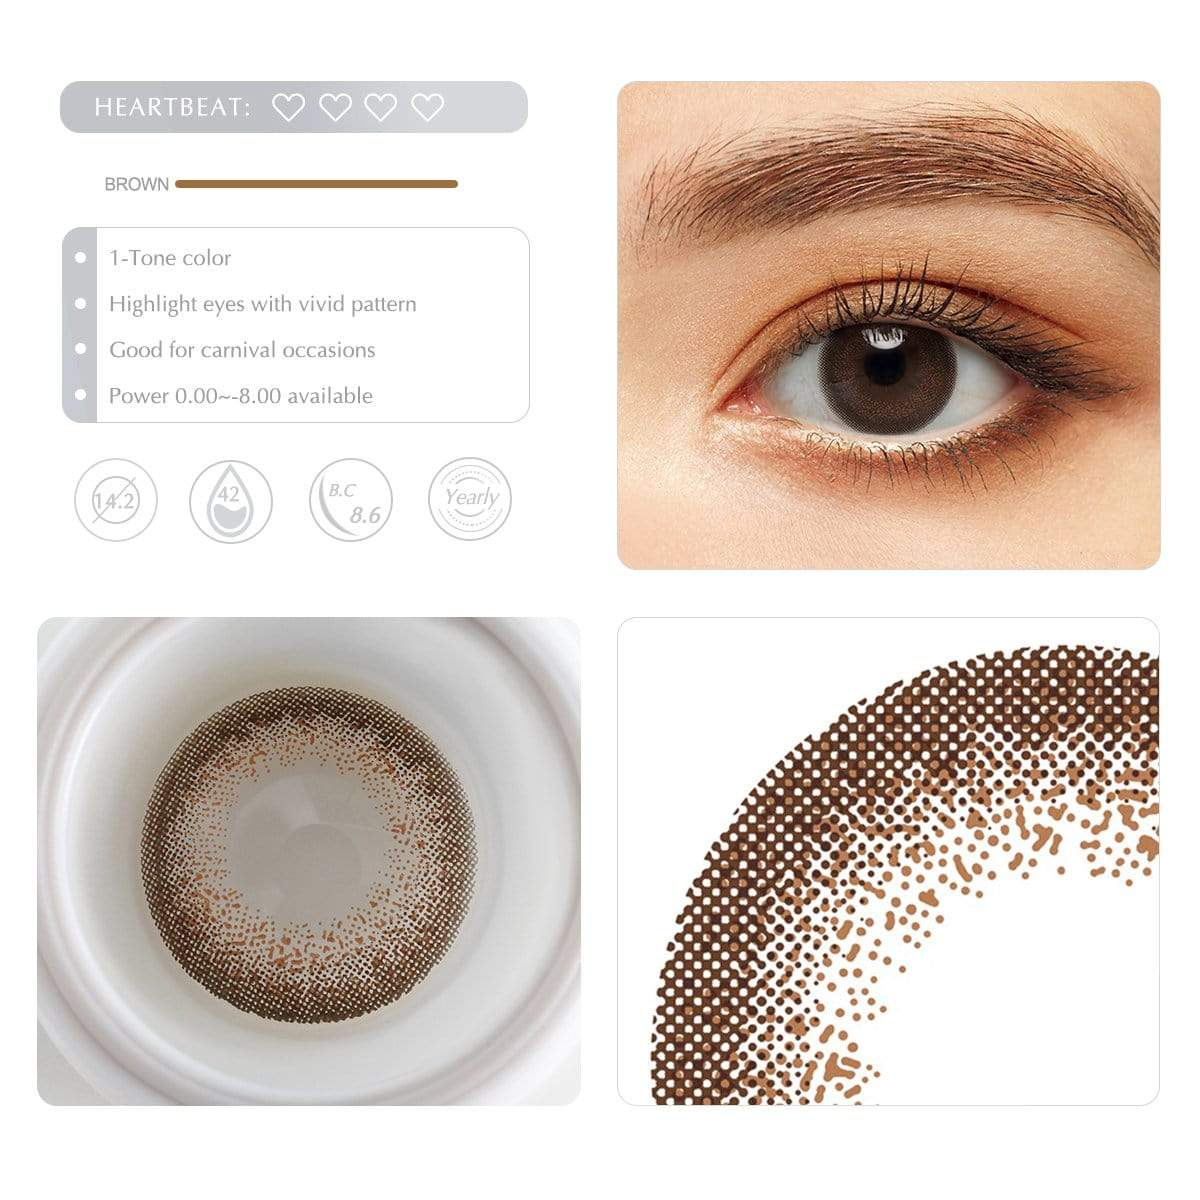 Choco brown contact lens details display rederings